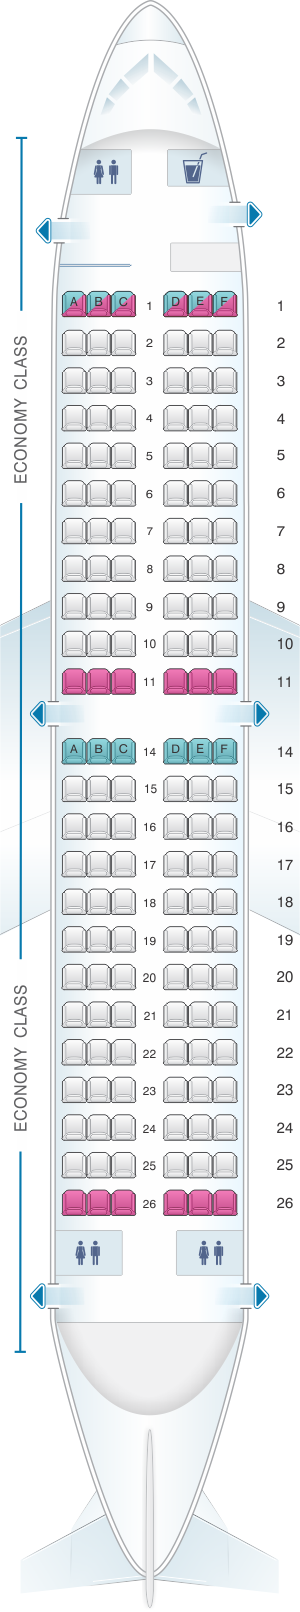 Seat map for Corendon Airlines Boeing B737 300